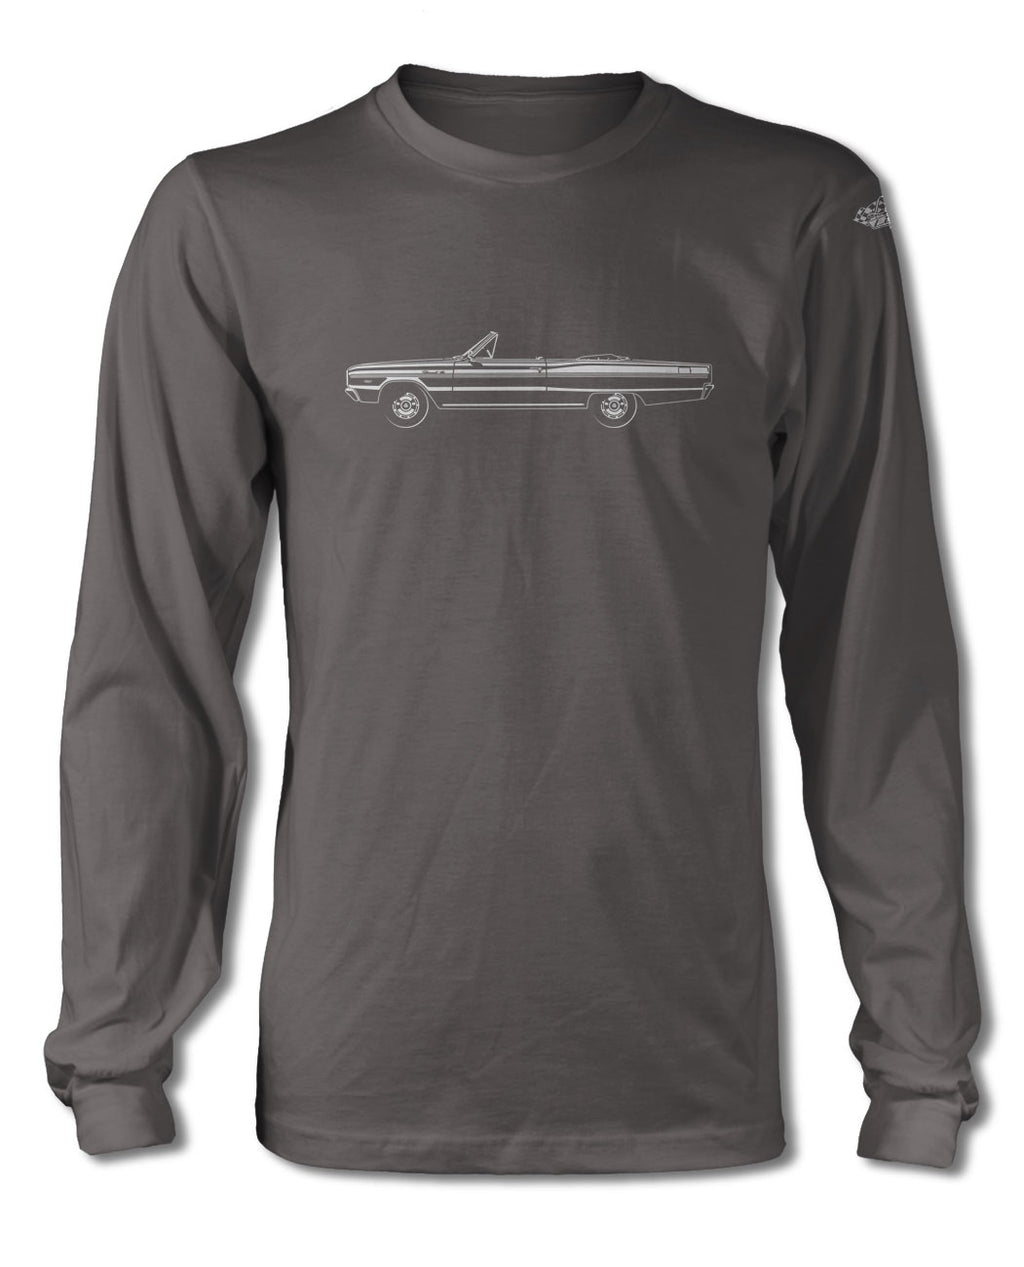 1966 Dodge Coronet 440 383 ci Convertible T-Shirt - Long Sleeves - Side View